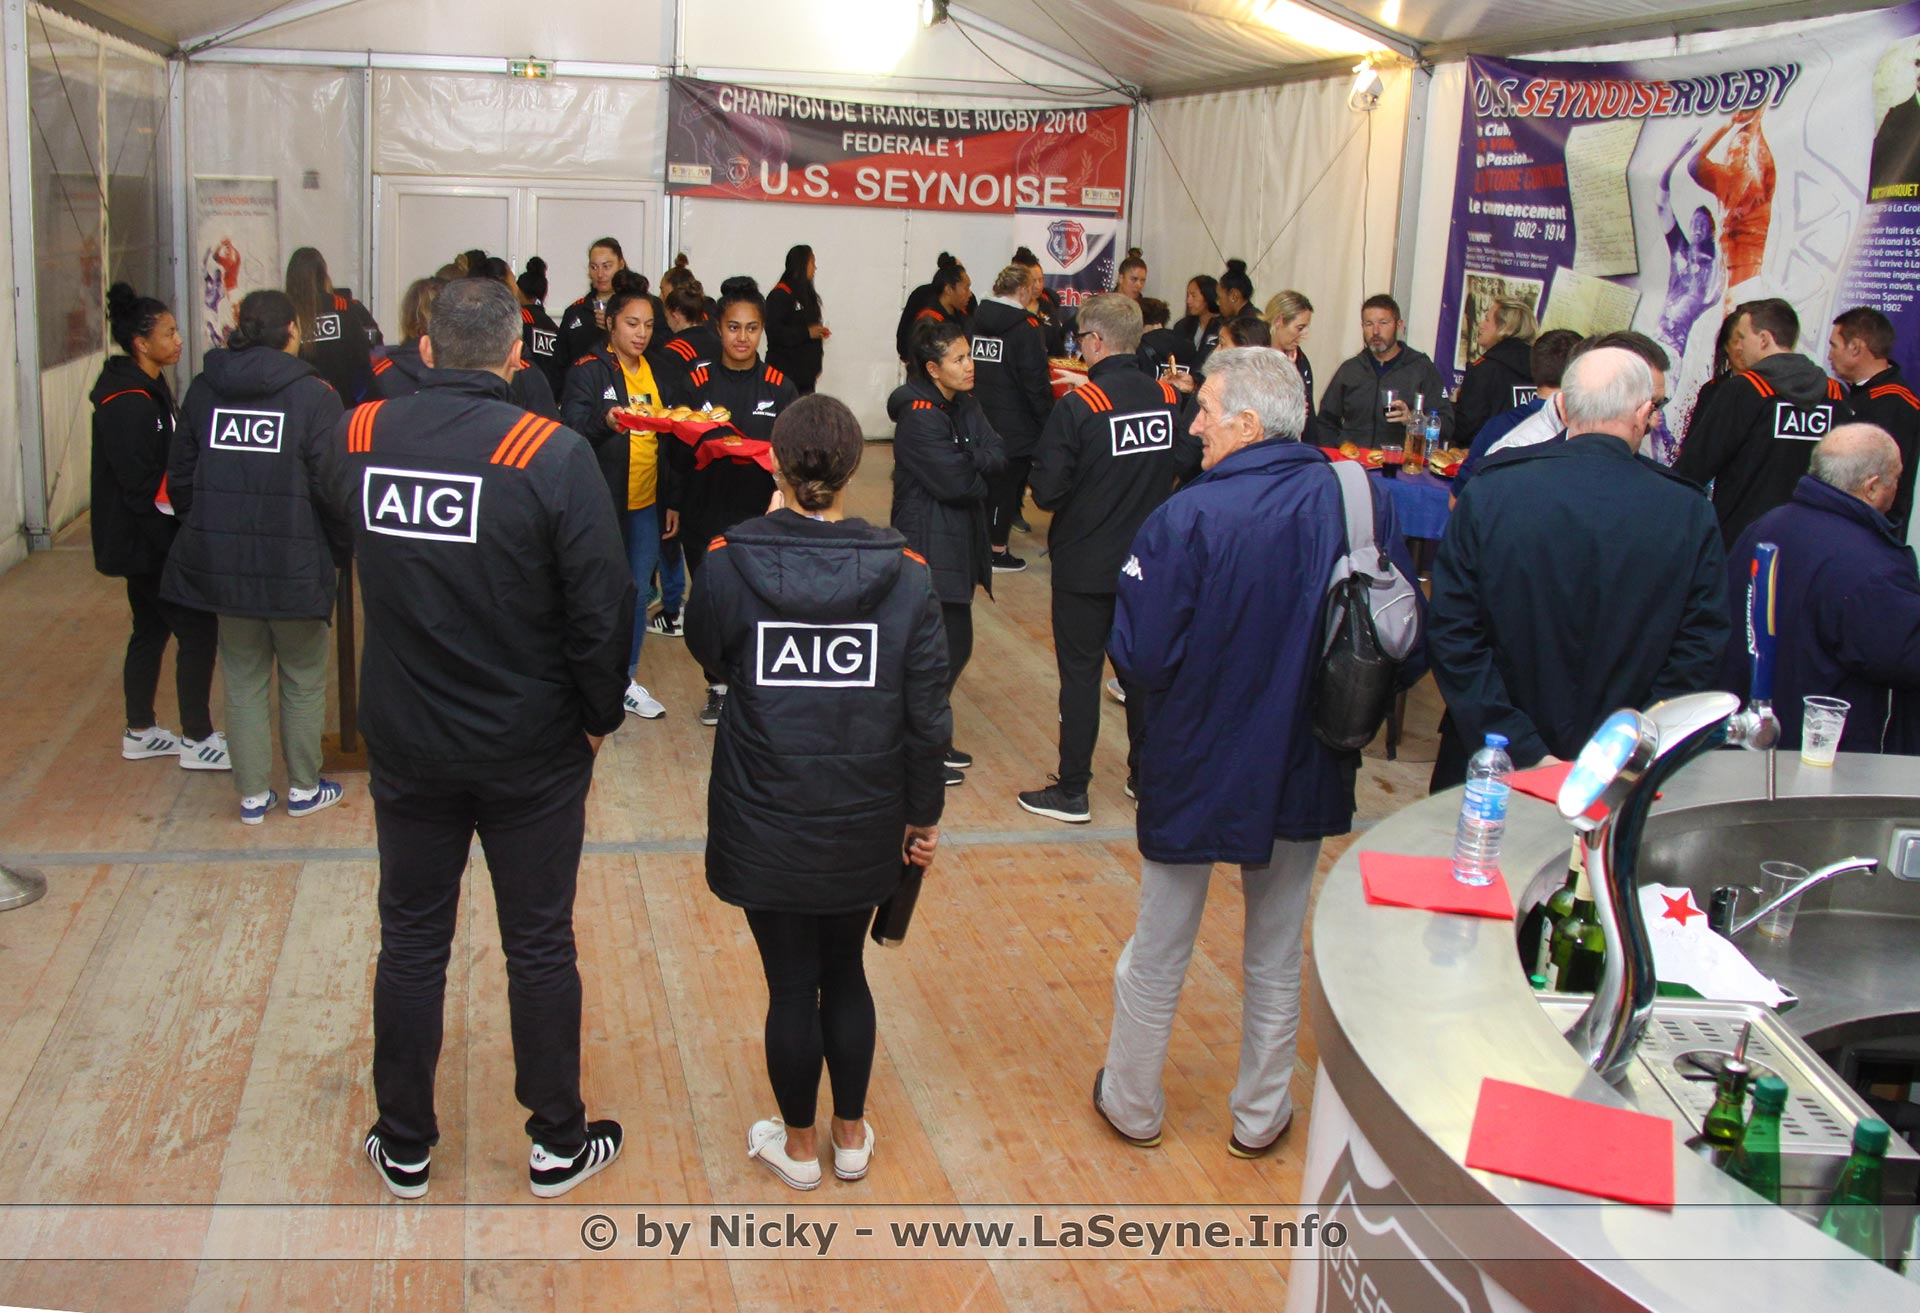 Les Black Ferns (Rugbywomen des All Blacks) à La Seyne à l'Occasion de la Tournée internationale d'Automne de Rugby -